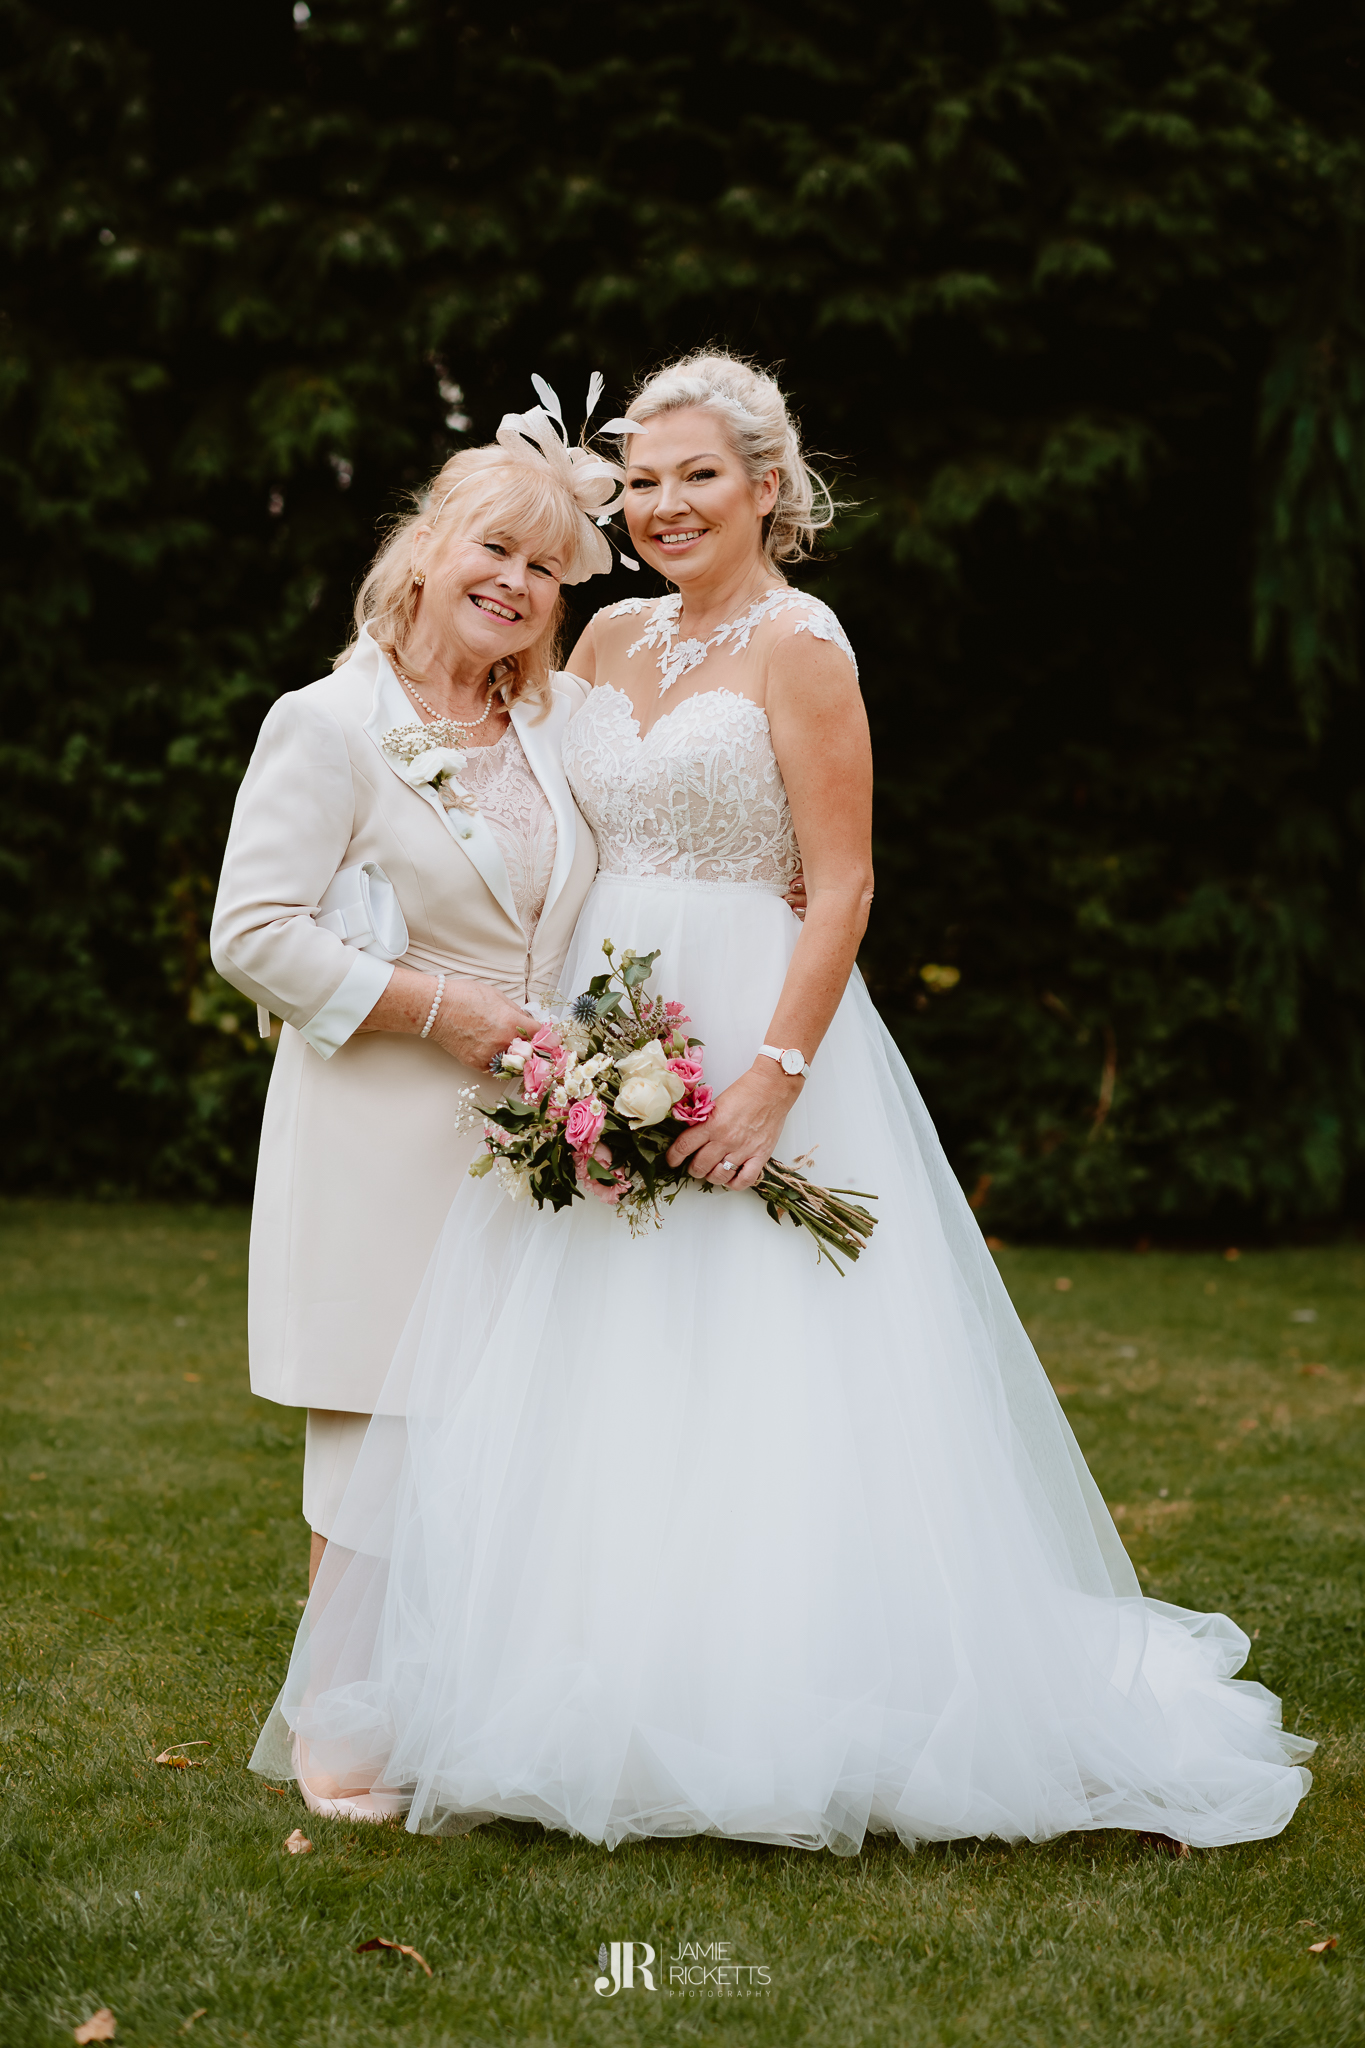 Wroxeter-Hotel-Wedding-Photography-In-Shropshire-By-Shropshire-Wedding-Photographer-Jamie-Ricketts-106.JPG